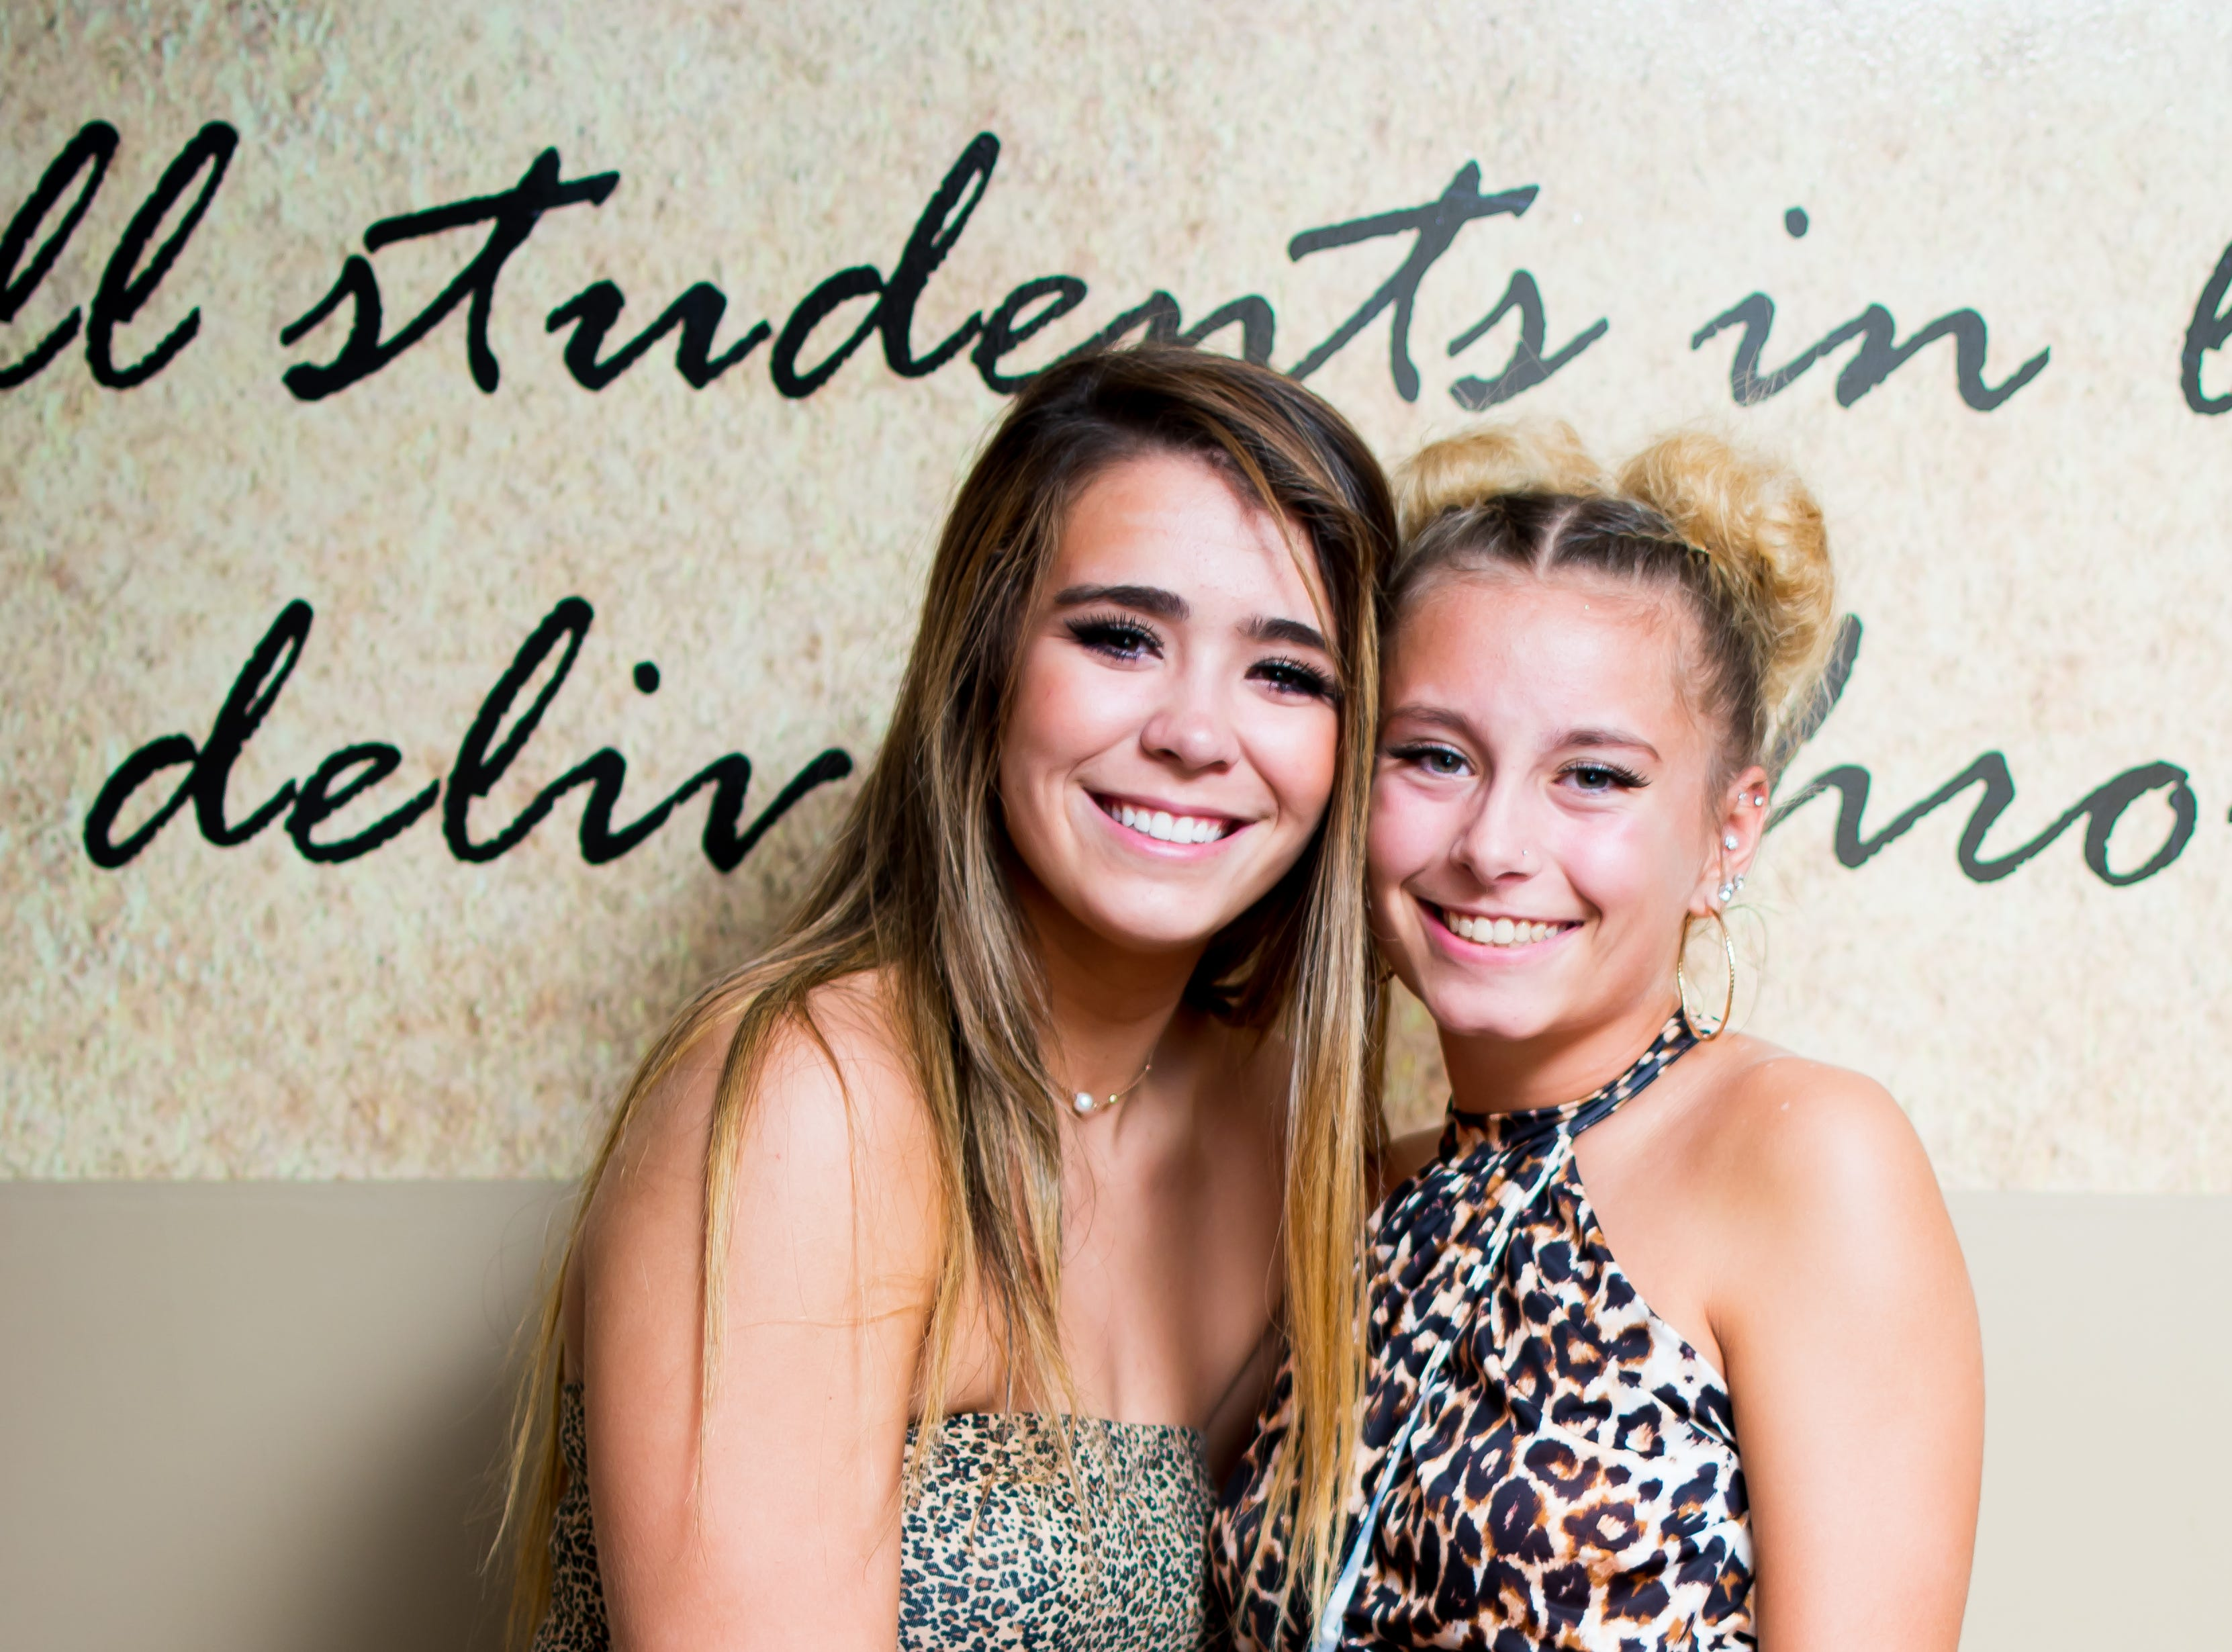 Sophia Harris, 17, and Alecia Hammond, 17, dress up for Southeast Polk High's homecoming dance on Saturday, September 22, 2018 in Southeast Polk High.